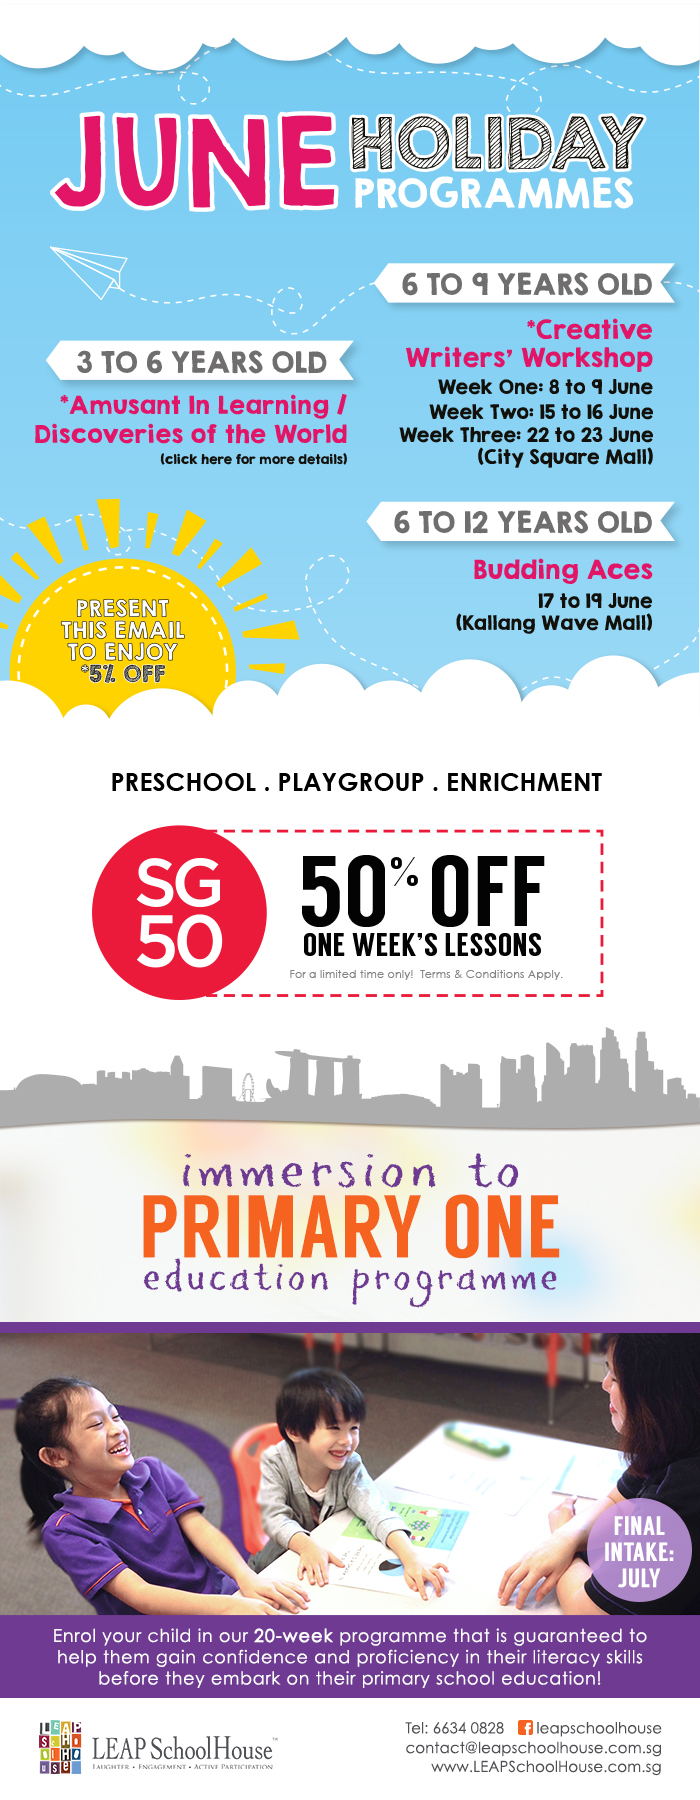 June Holiday Programmes for 3 to 12 years old. SG50 50% Off One Week's Lessons. Immersion to Primary One education programme final intake.